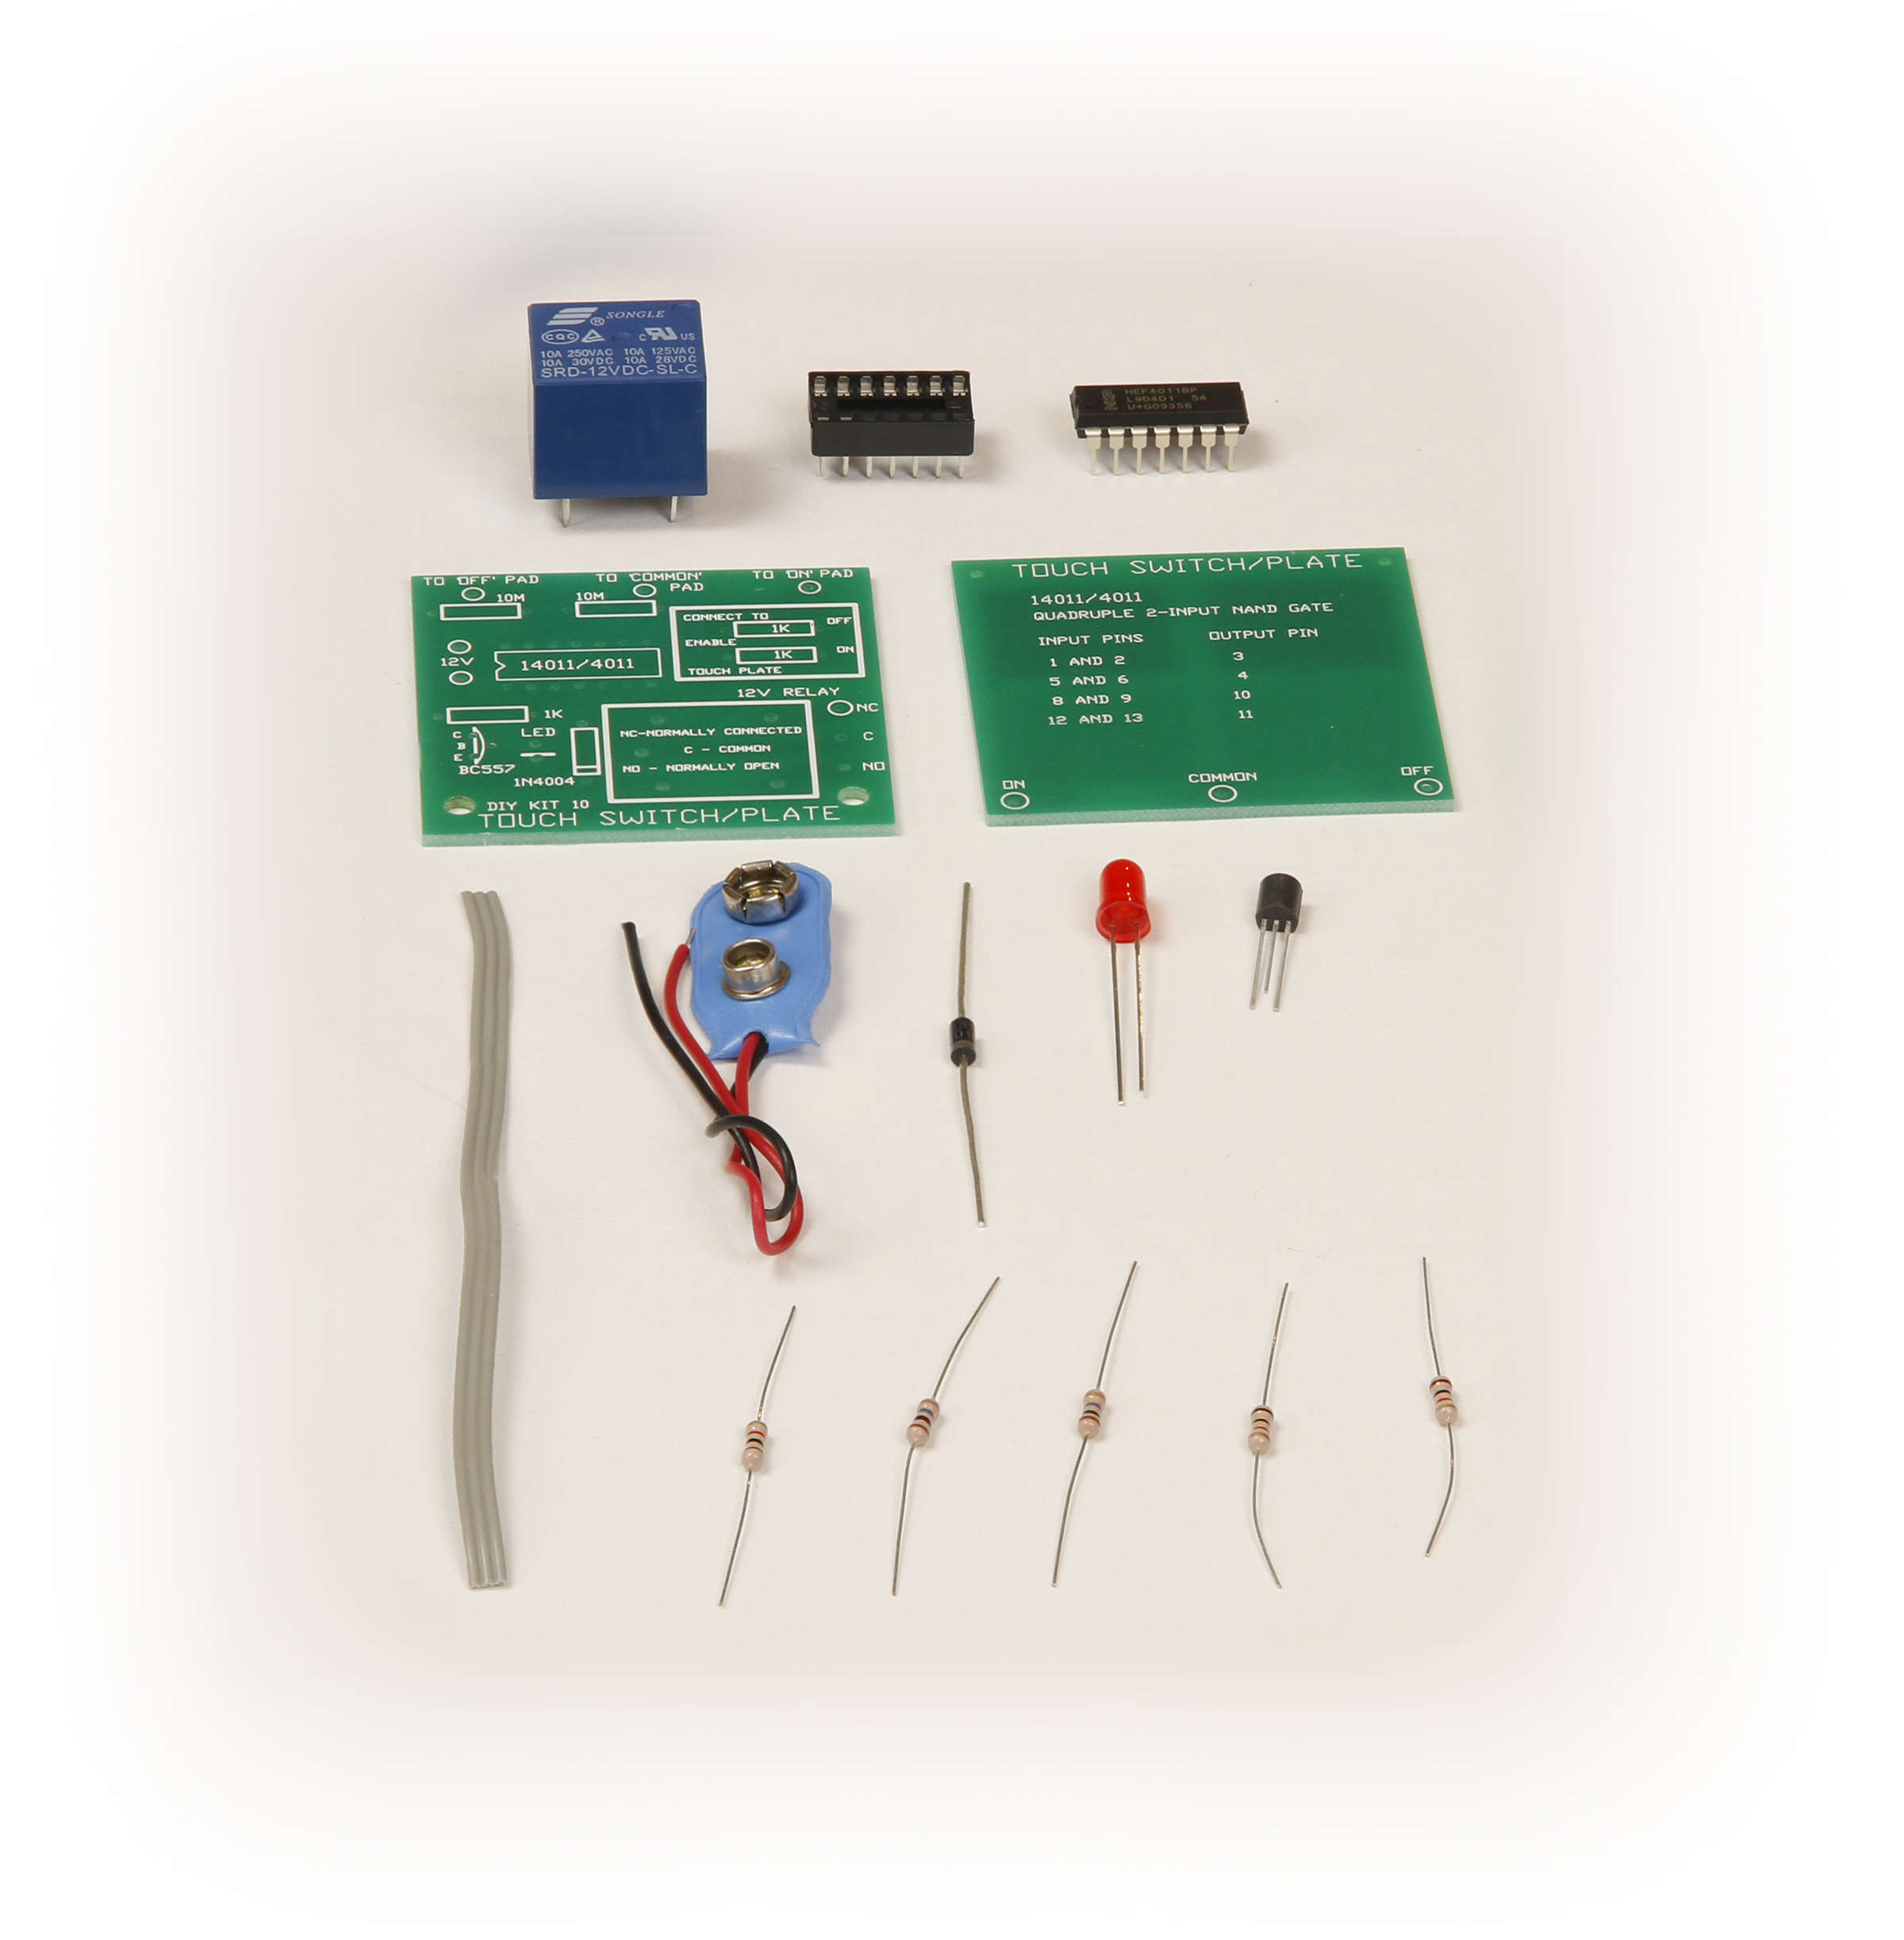 Global Specialties GSK-10 Touch Control Switch Kit Photo